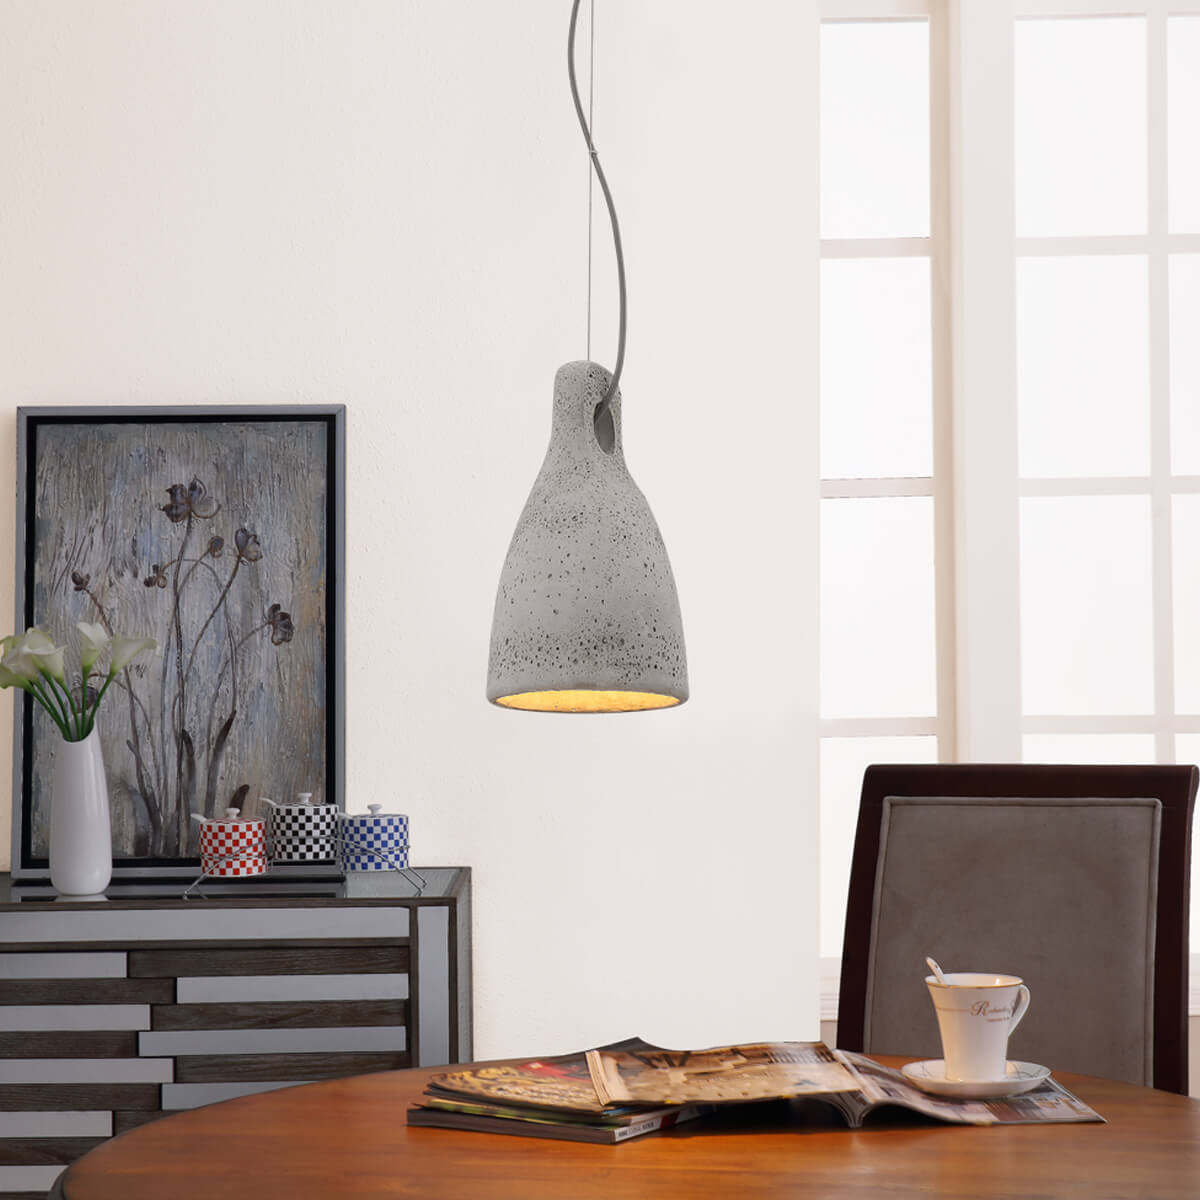 make your student accommodation feel like home - grey pendant lamp over white table